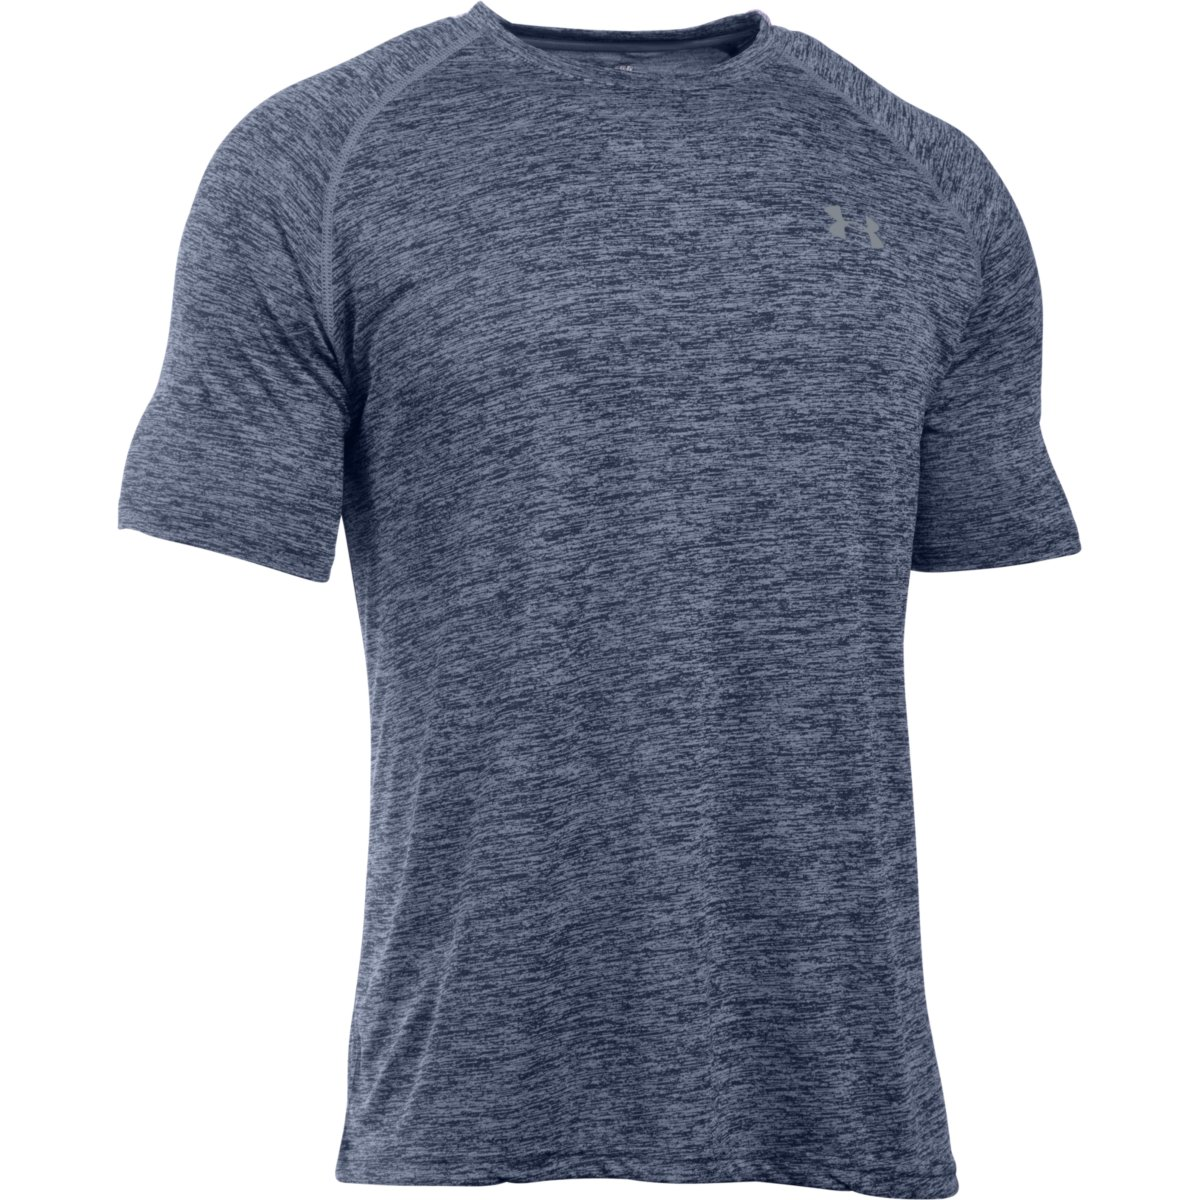 Under Armour Men's UA Tech Short Sleeve T Shirt